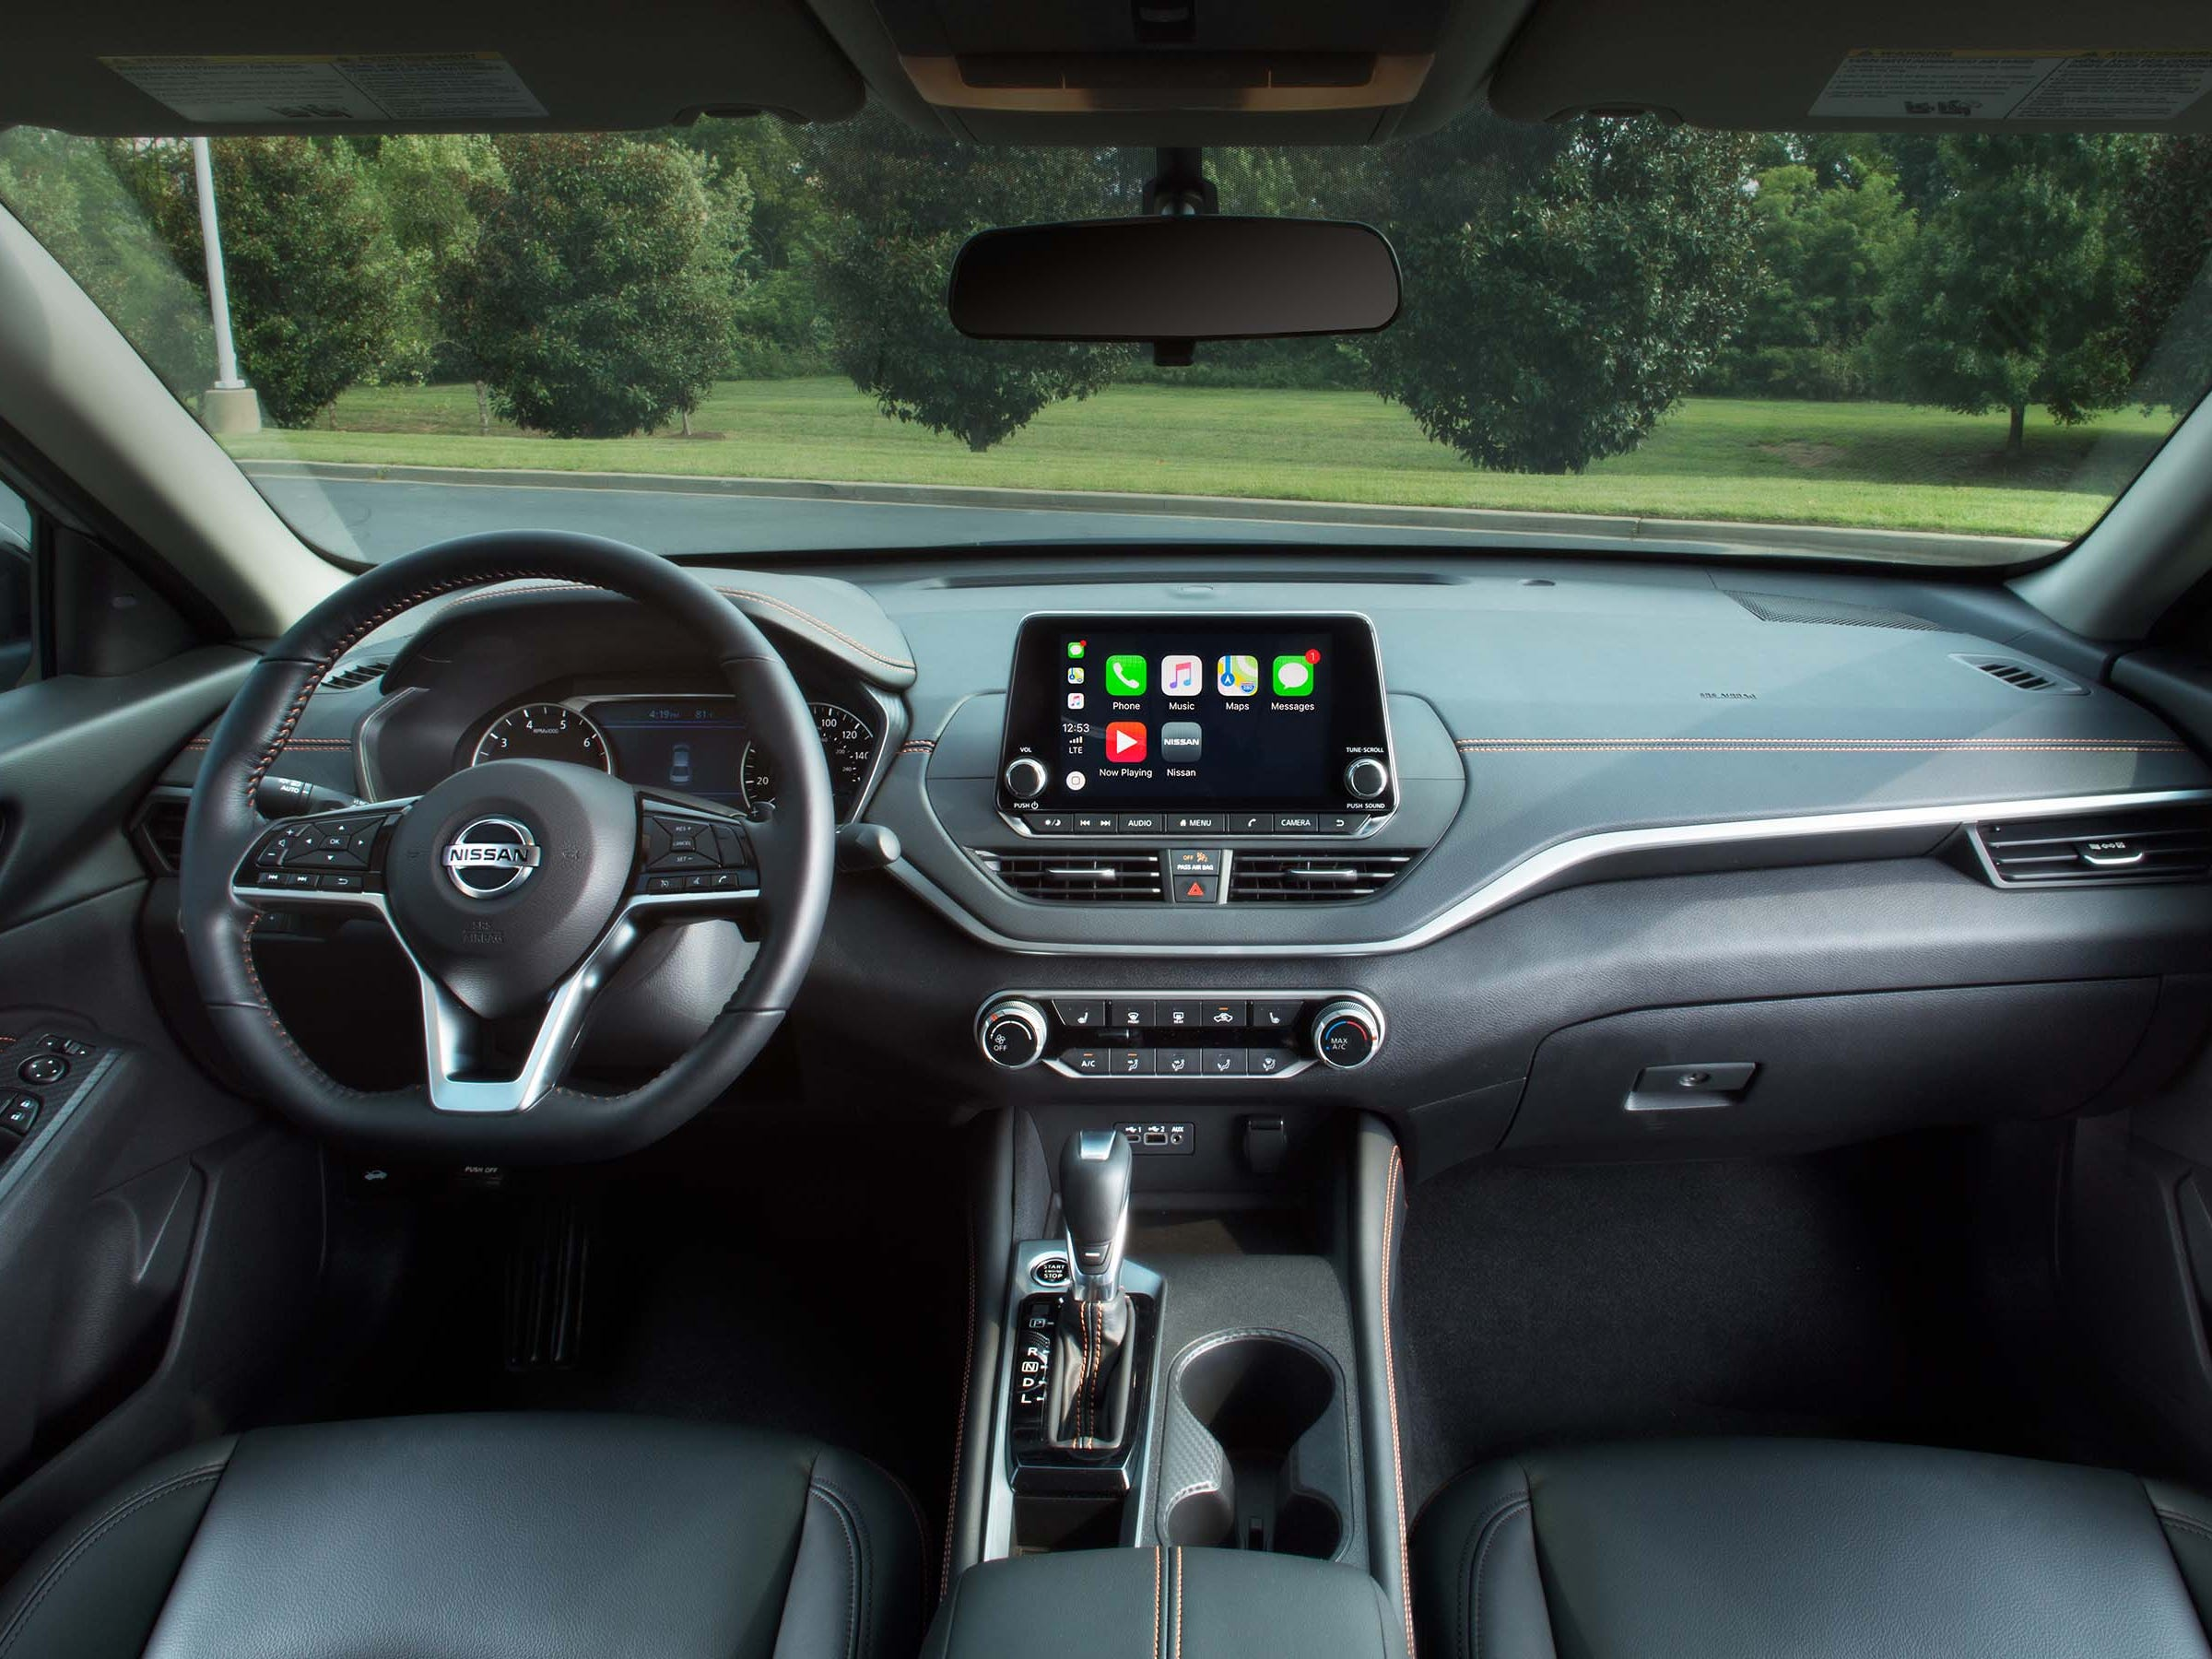 The 2019 Nissan Altima is equipped with a handsome, ergonomically efficient interior: infotainment is high in driver's eye view, great console cubby space and lots of tech including smartphone app connectivity for navigation.